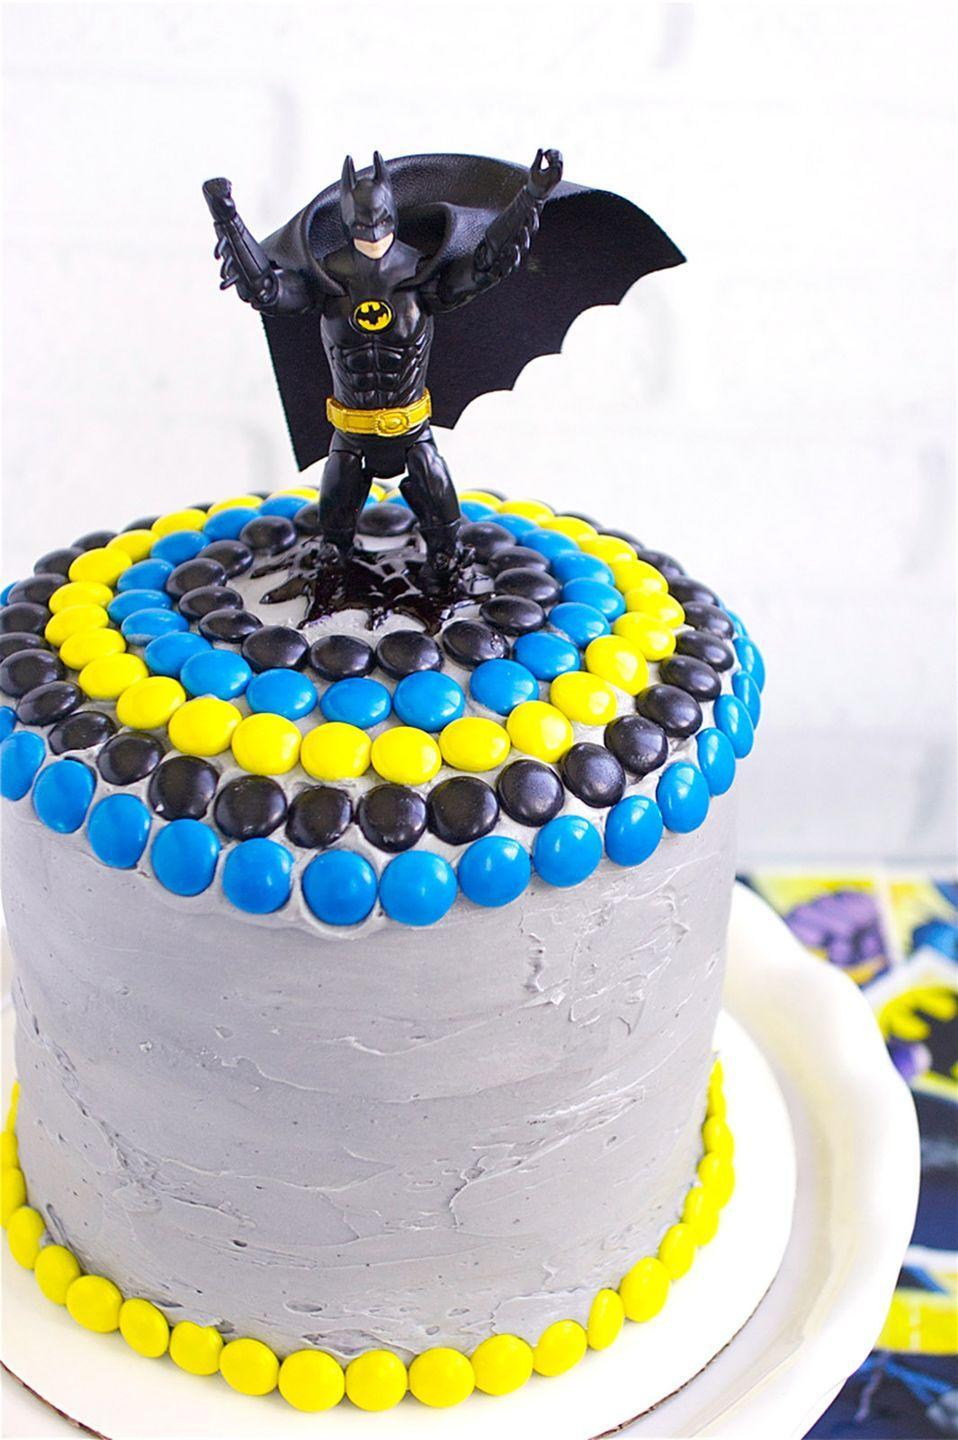 """<p>The decorations on this cake are pretty fitting, given that dad is basically a superhero. </p><p><em><a href=""""http://deliciouslydeclassified.com/2015/03/28/batman-cake/"""" rel=""""nofollow noopener"""" target=""""_blank"""" data-ylk=""""slk:Get the recipe from Deliciously Declassified »"""" class=""""link rapid-noclick-resp"""">Get the recipe from Deliciously Declassified »</a></em> </p>"""